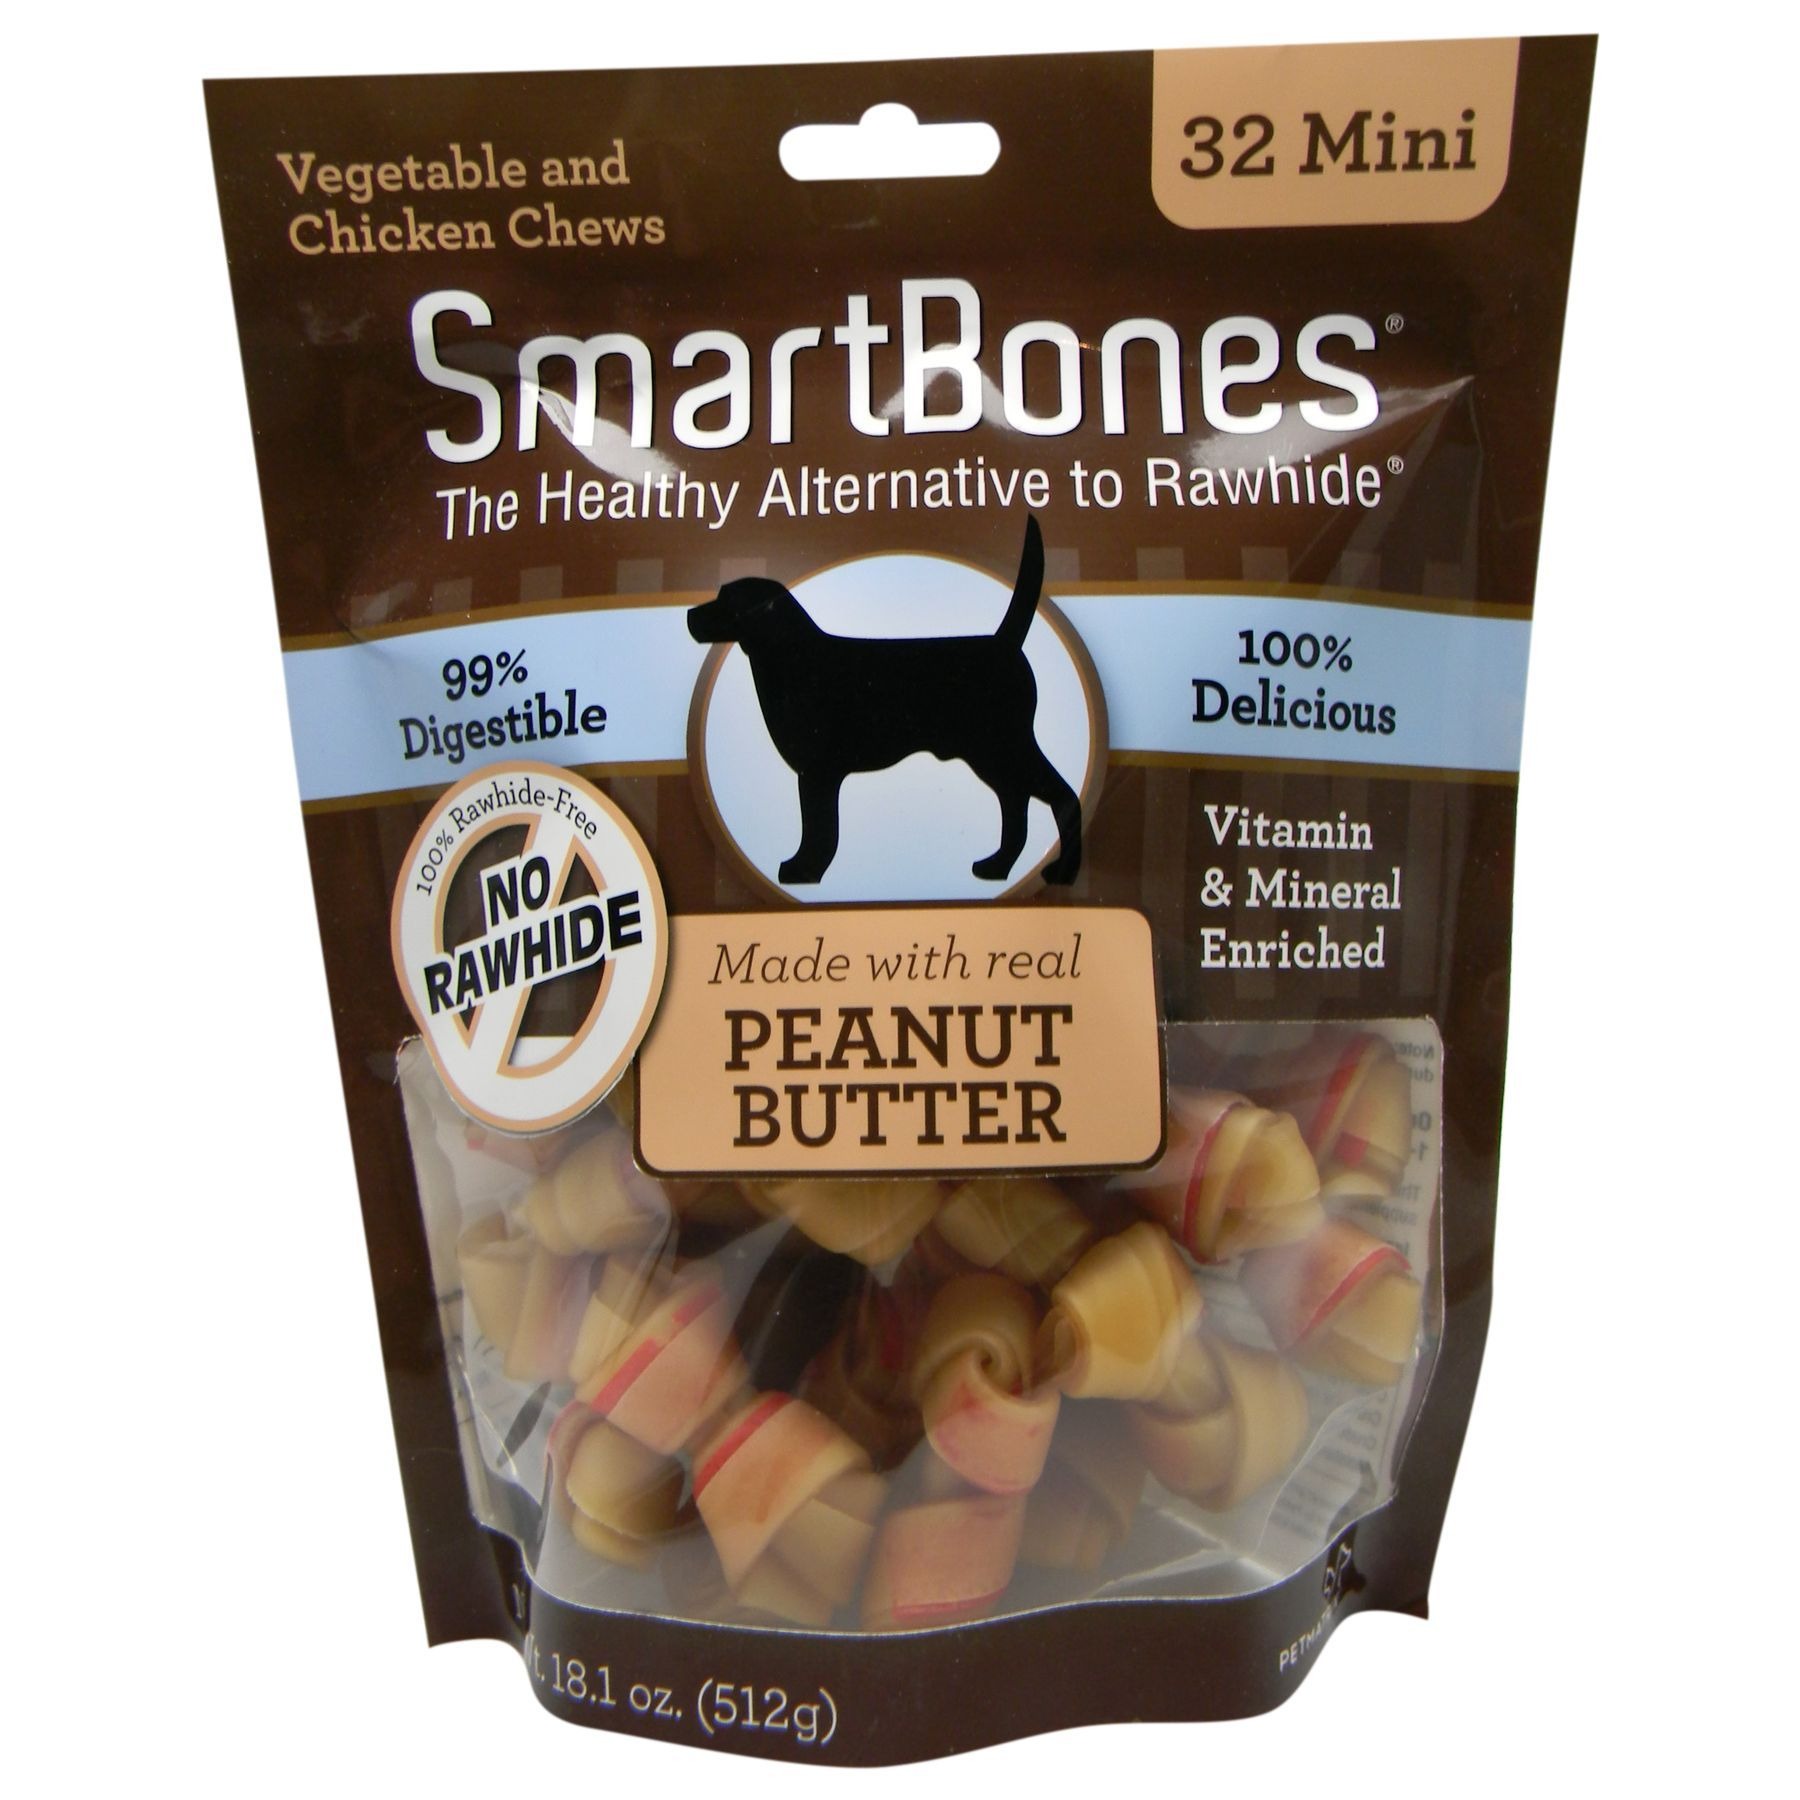 SmartBones Mini Chews Dog Treat Peanut Butter size 32